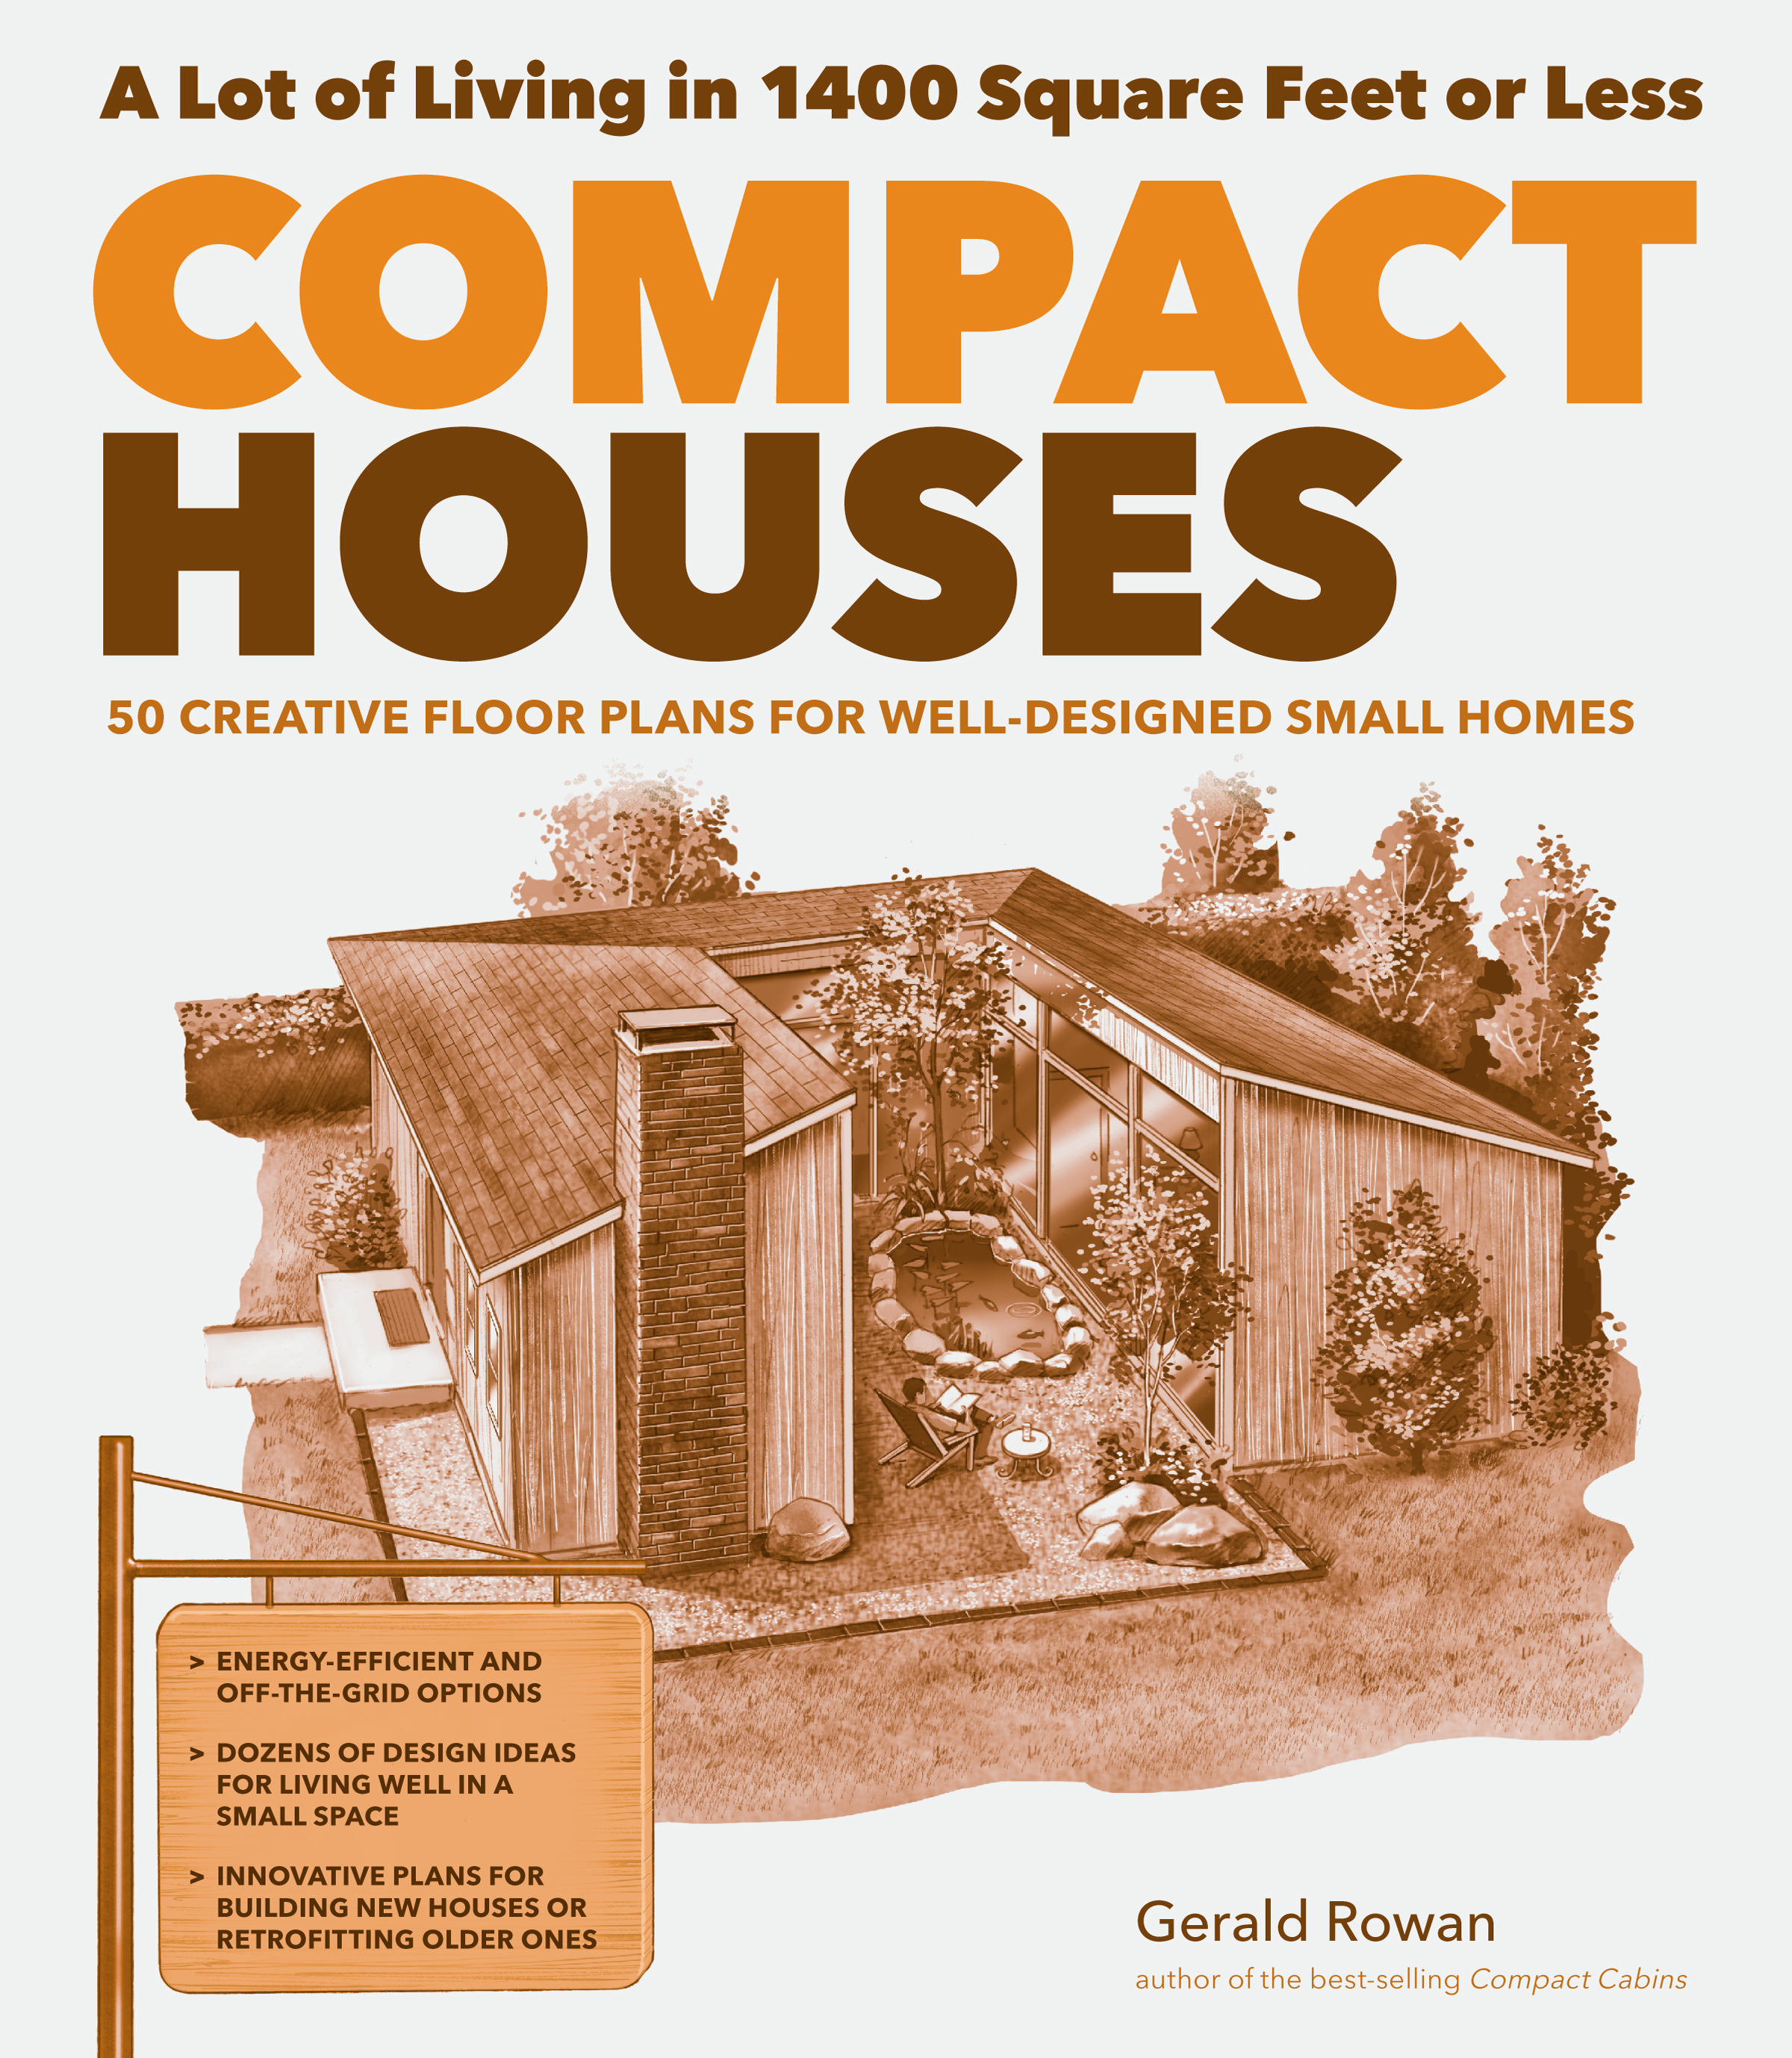 Compact Houses 50 Creative Floor Plans for Well-Designed Small Homes - Gerald Rowan